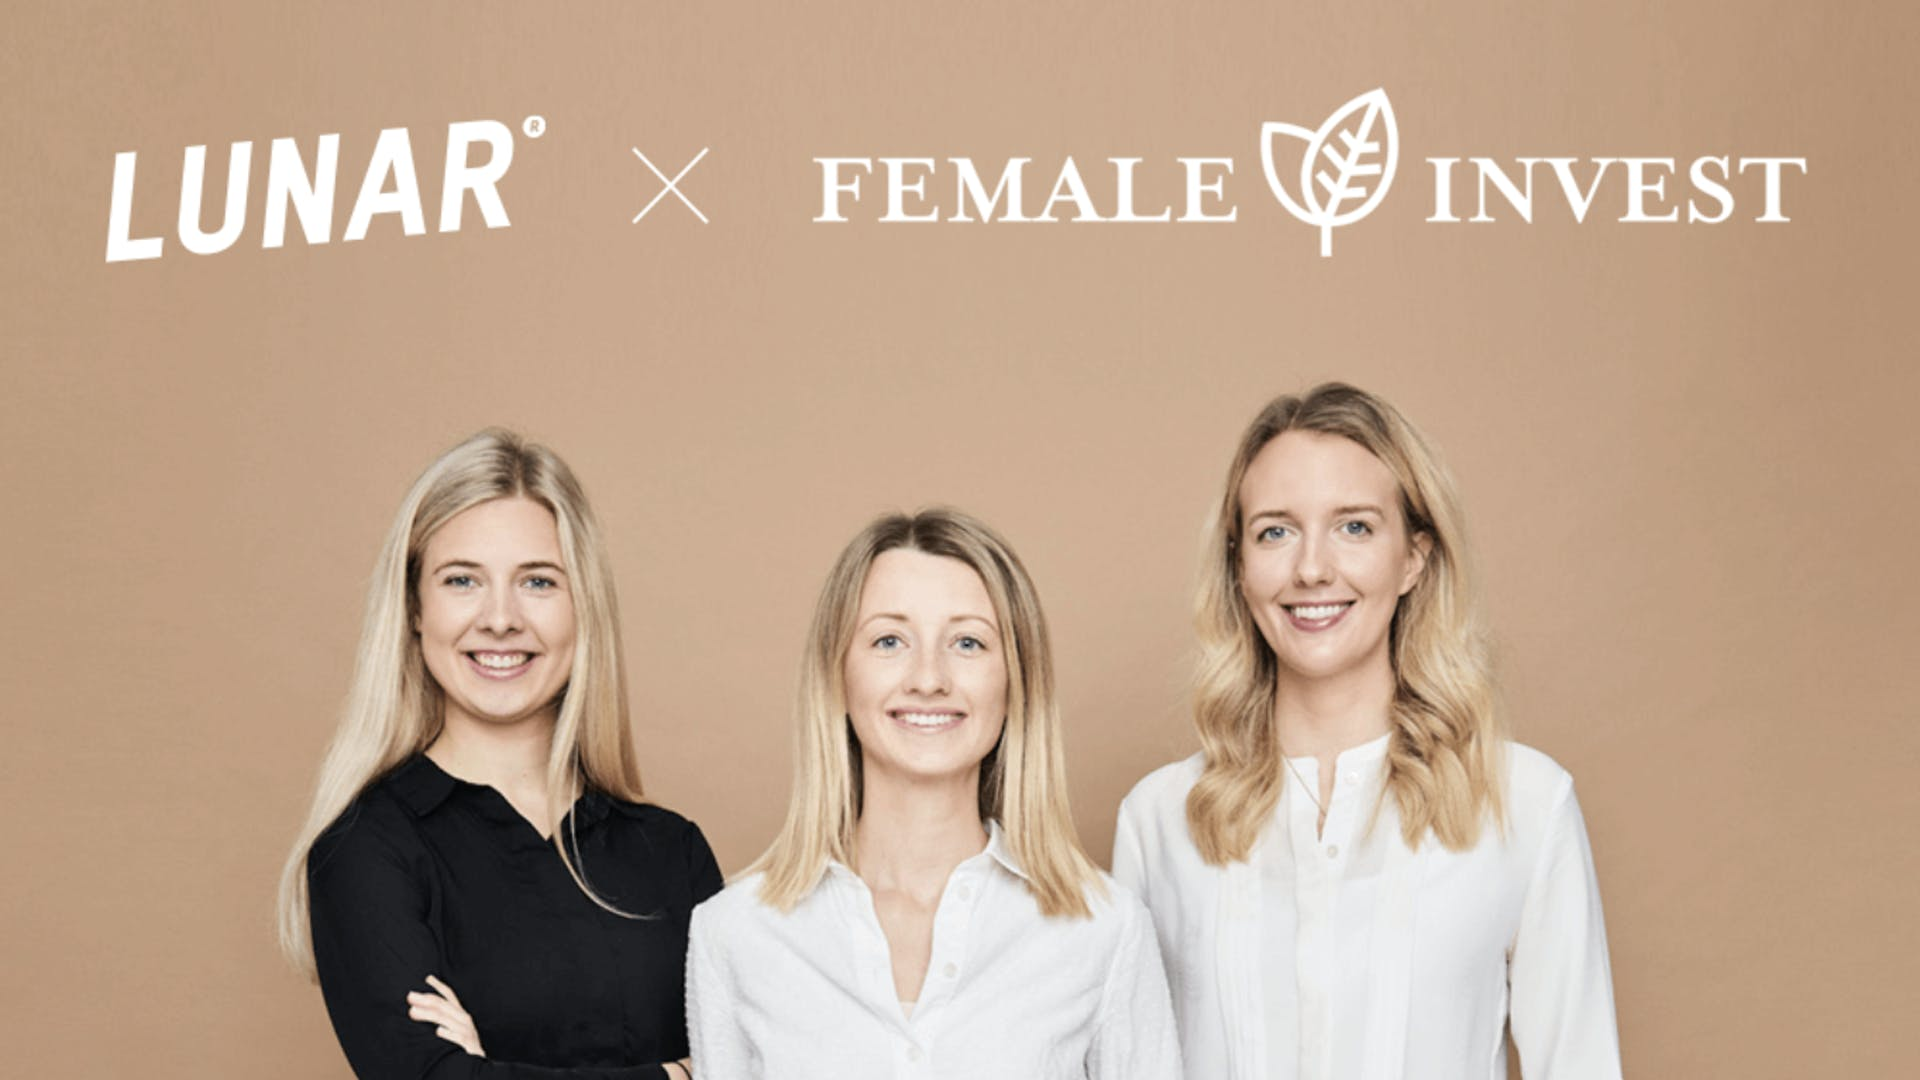 Lunar x Female Invest